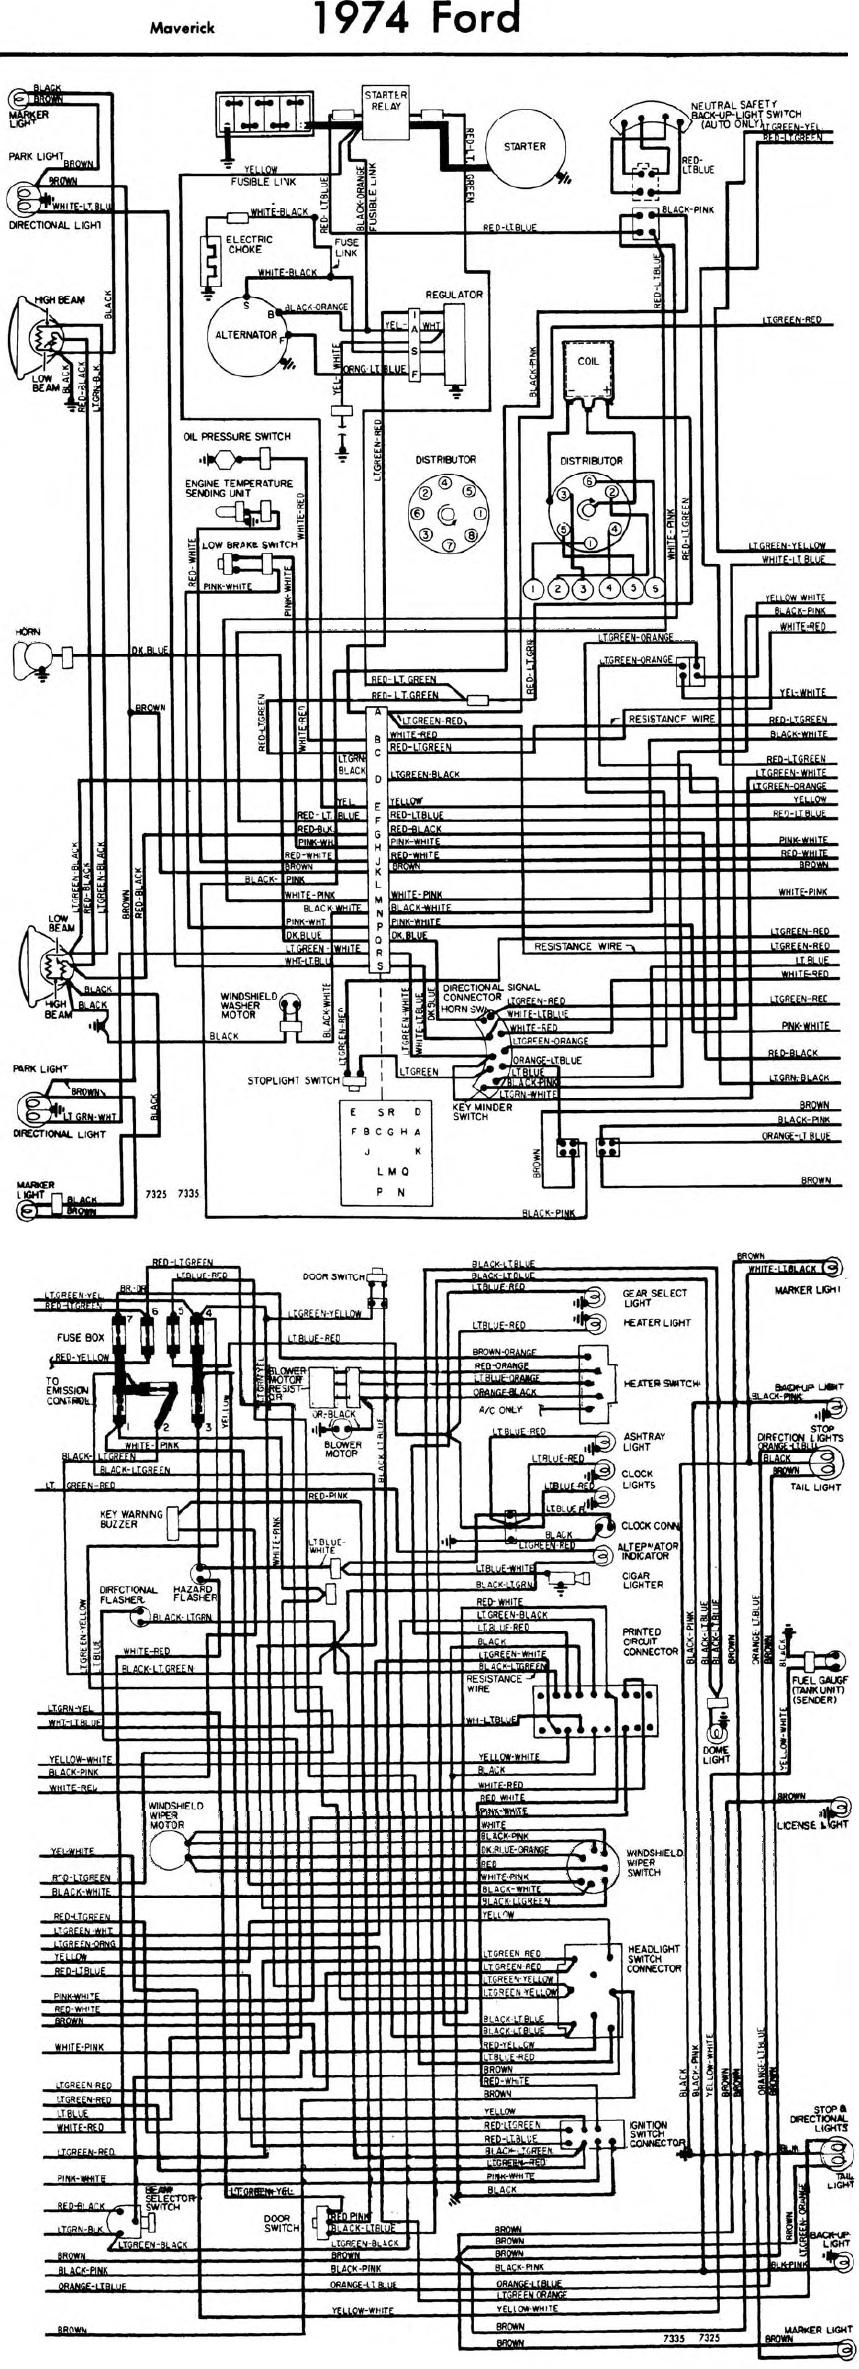 Ford Maverick Starter Wiring Completed Diagrams Schematic 1970 Diagram Data Solenoid